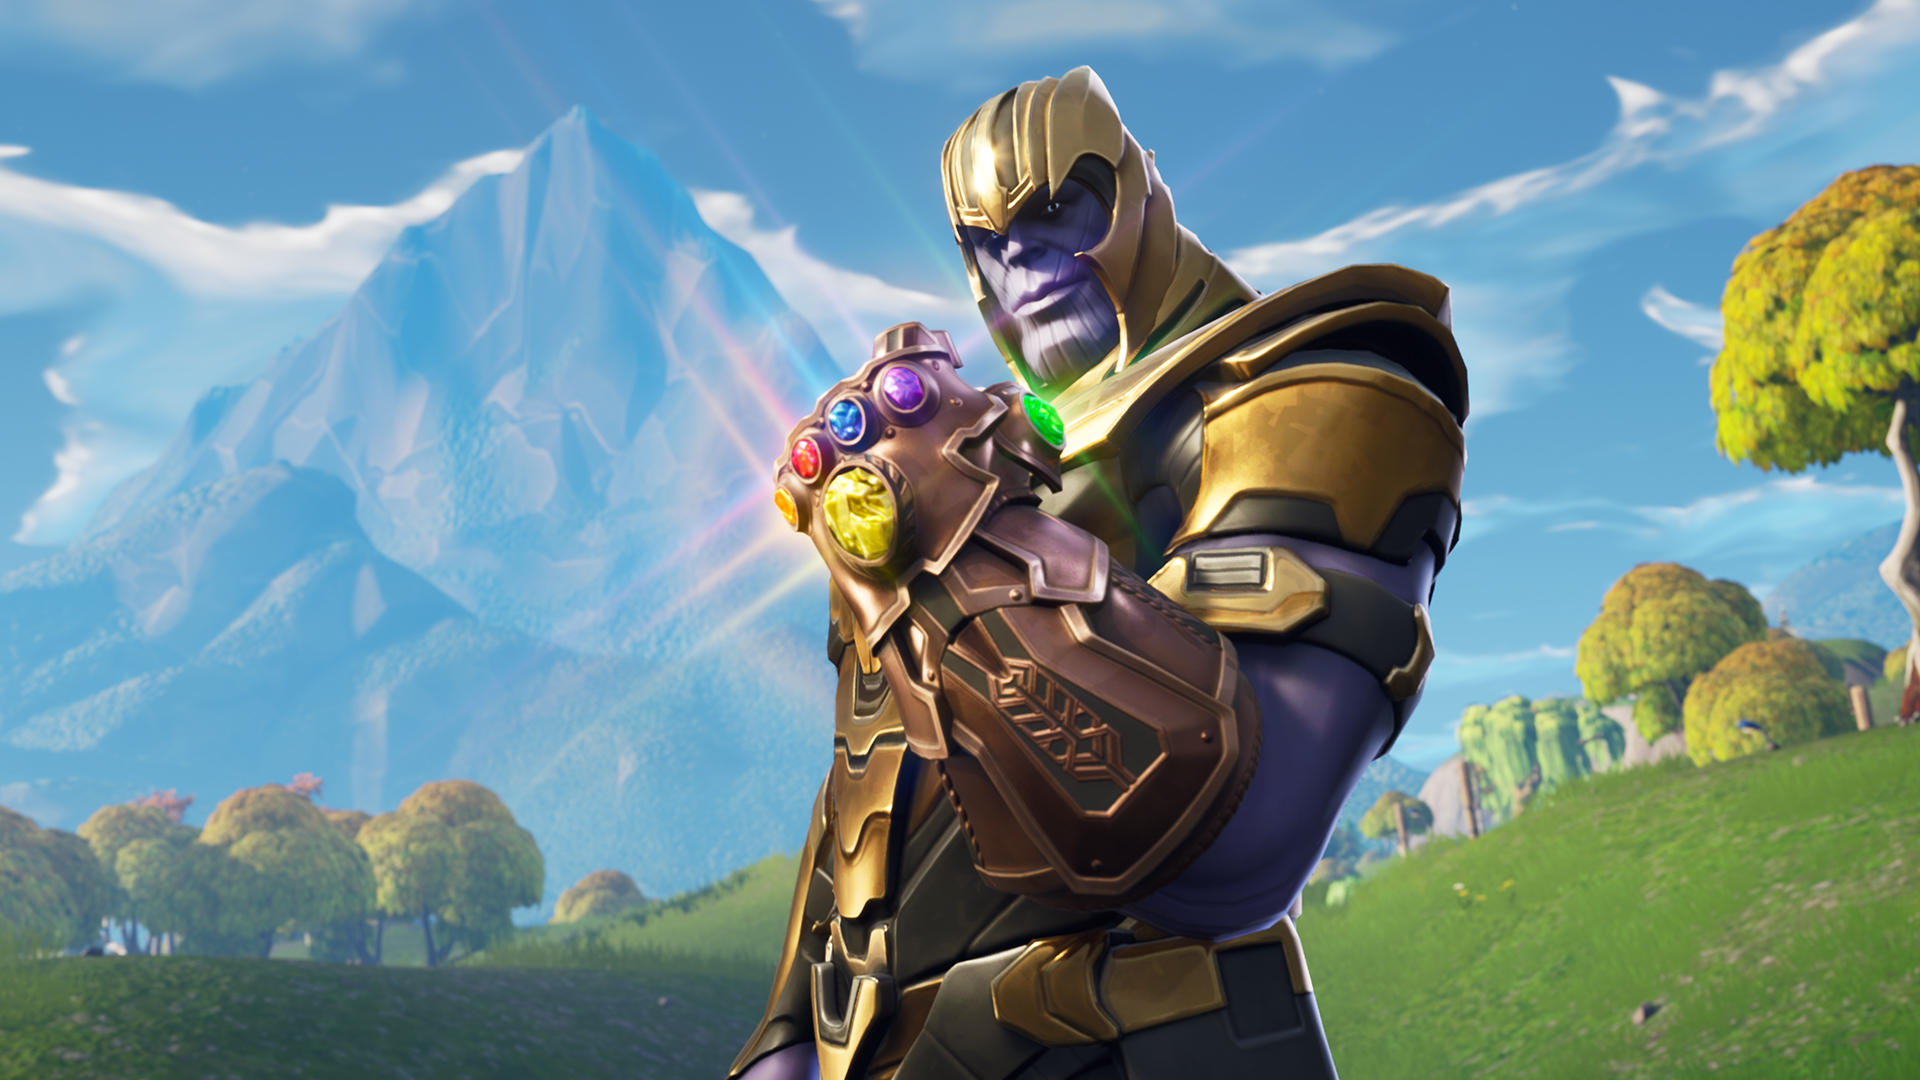 Fortnite Avengers Thanos Guide   Thanos AbilitiesPowers Will 1920x1080